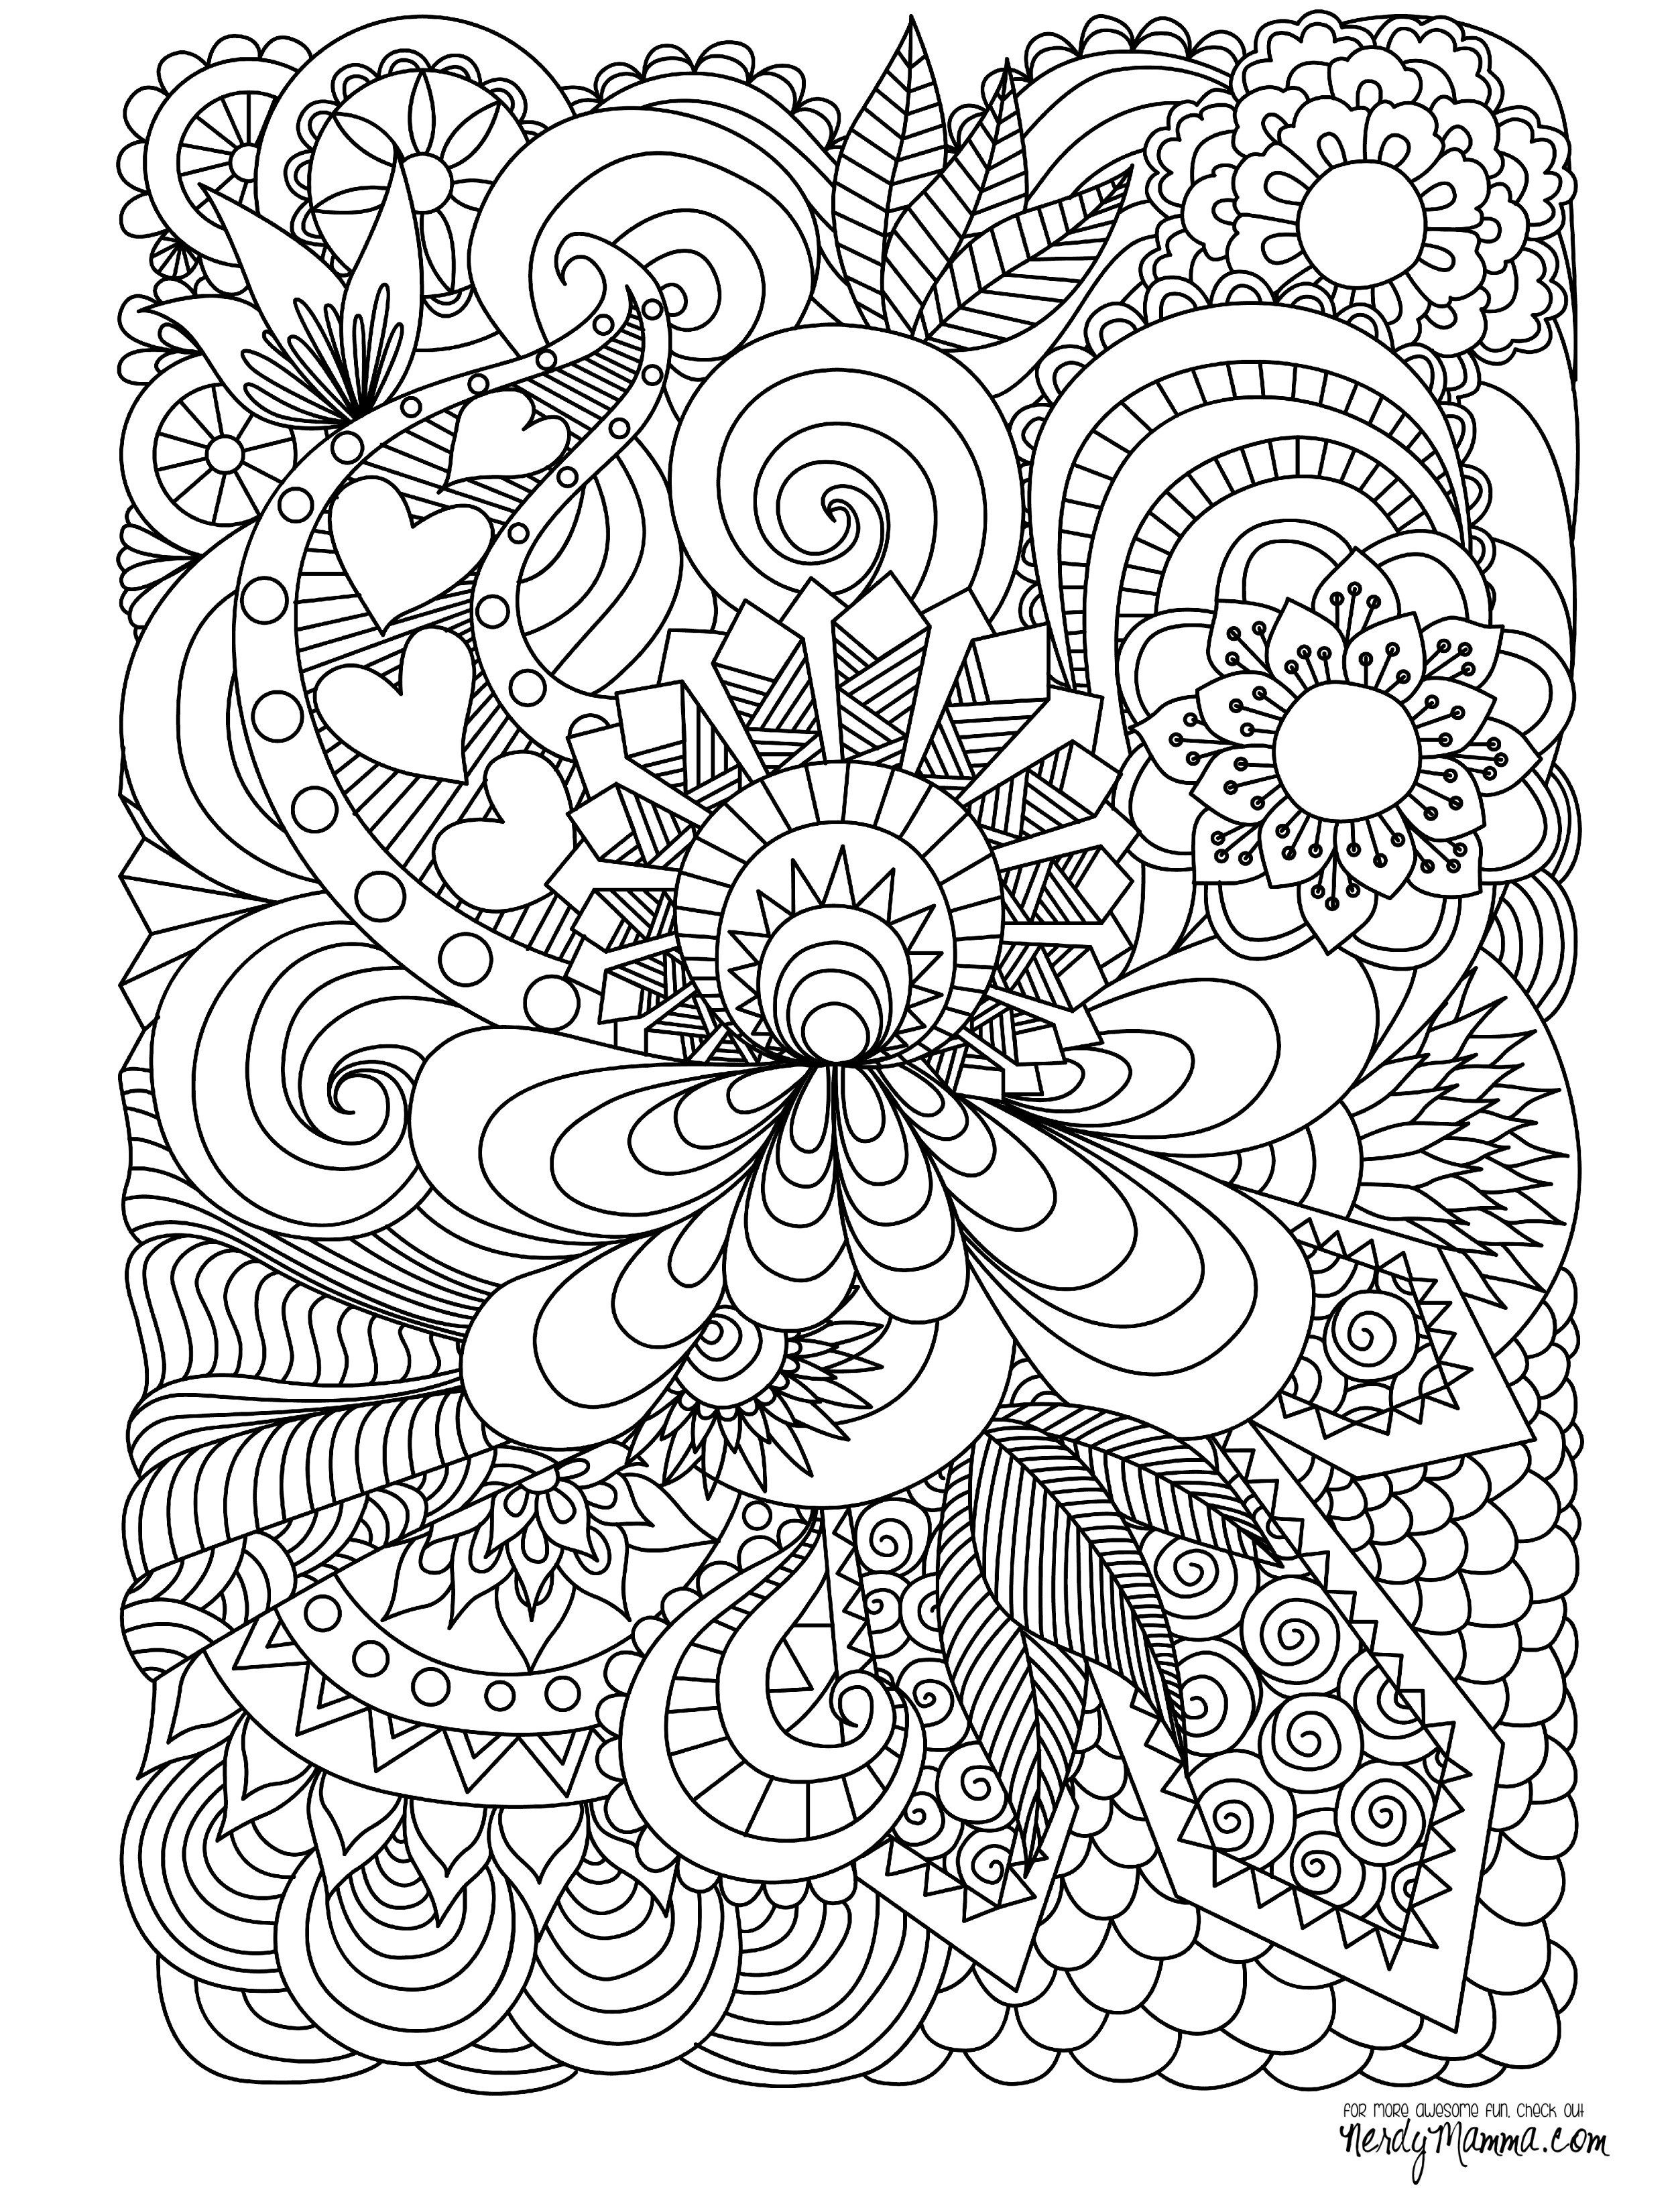 Abstract Doodle Coloring Pages Colouring Adult Detailed Advanced Printable Kleuren Voor Volwassenen Coloriage Pour Adulte Anti Stress Kleurplaat